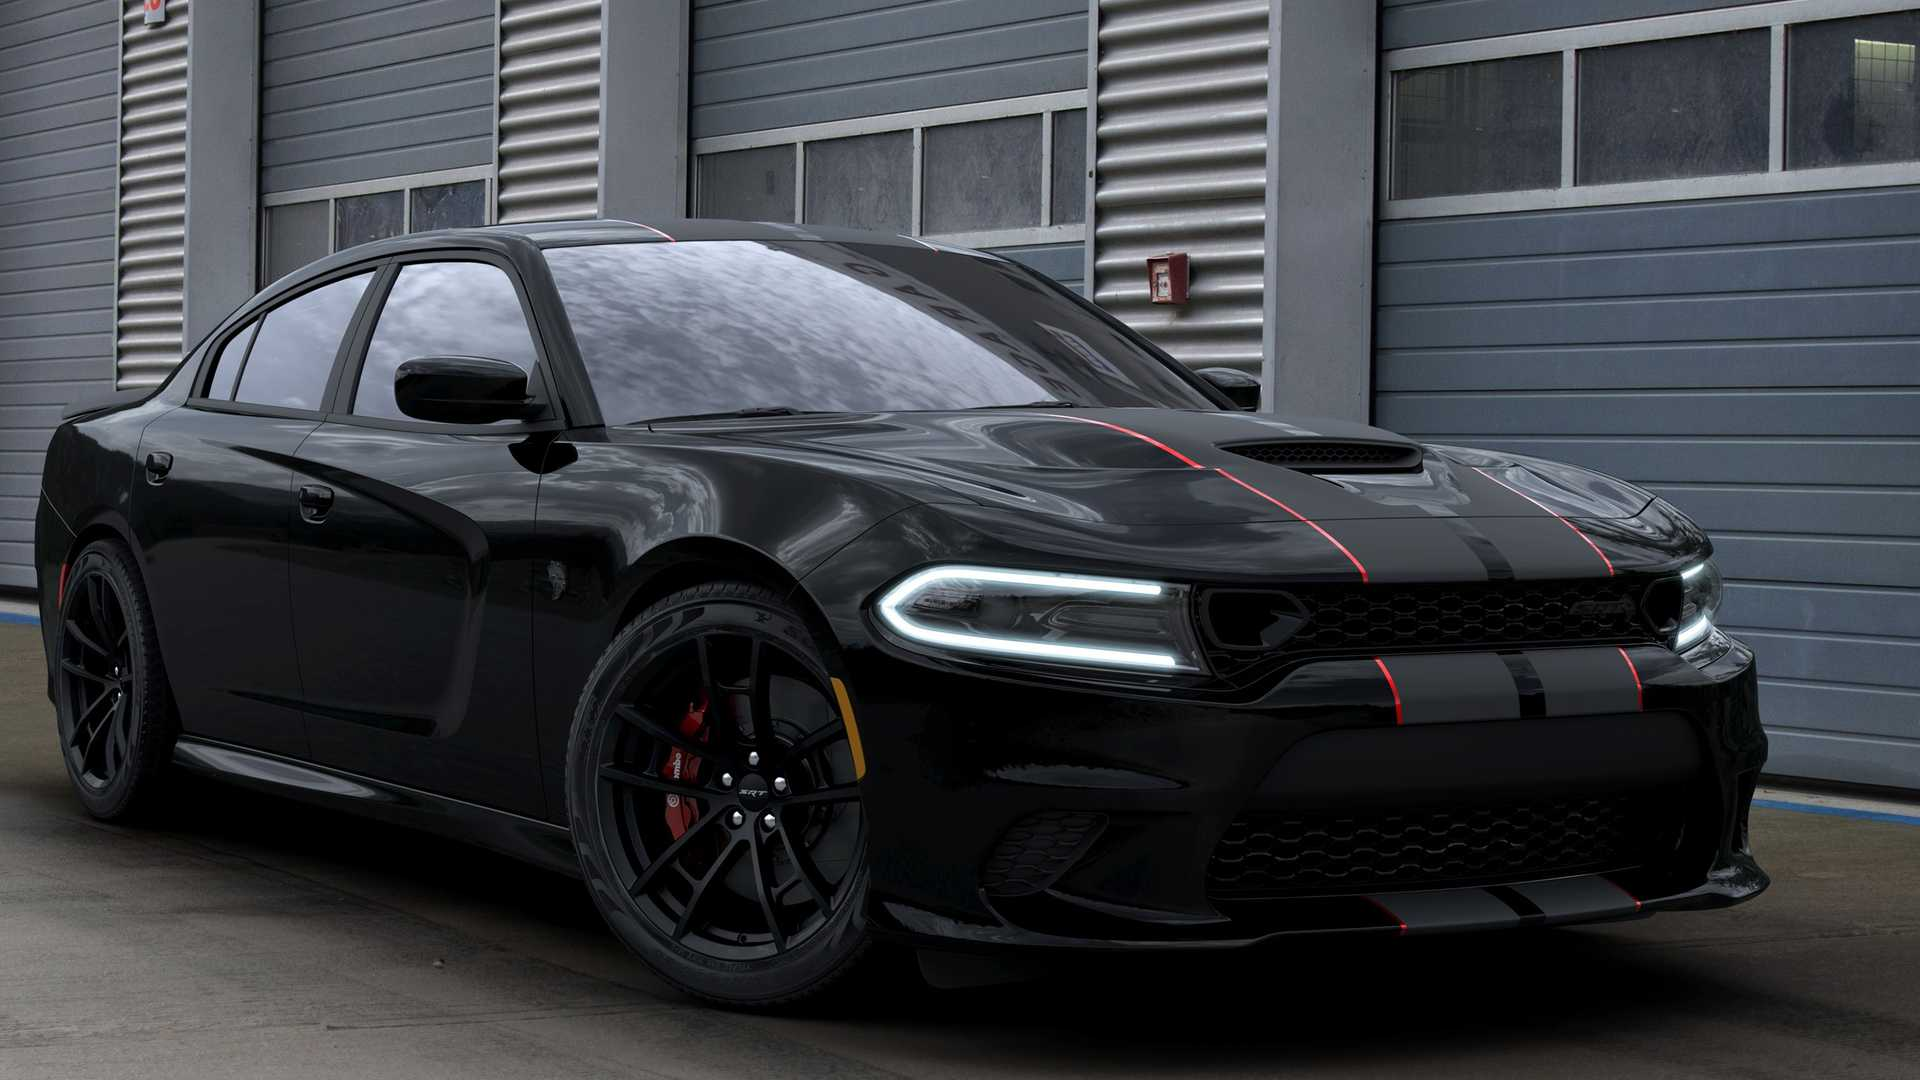 Dodge Charger Hellcat Price >> Dodge Charger Srt Hellcat Octane Edition Gets Stealthy Look